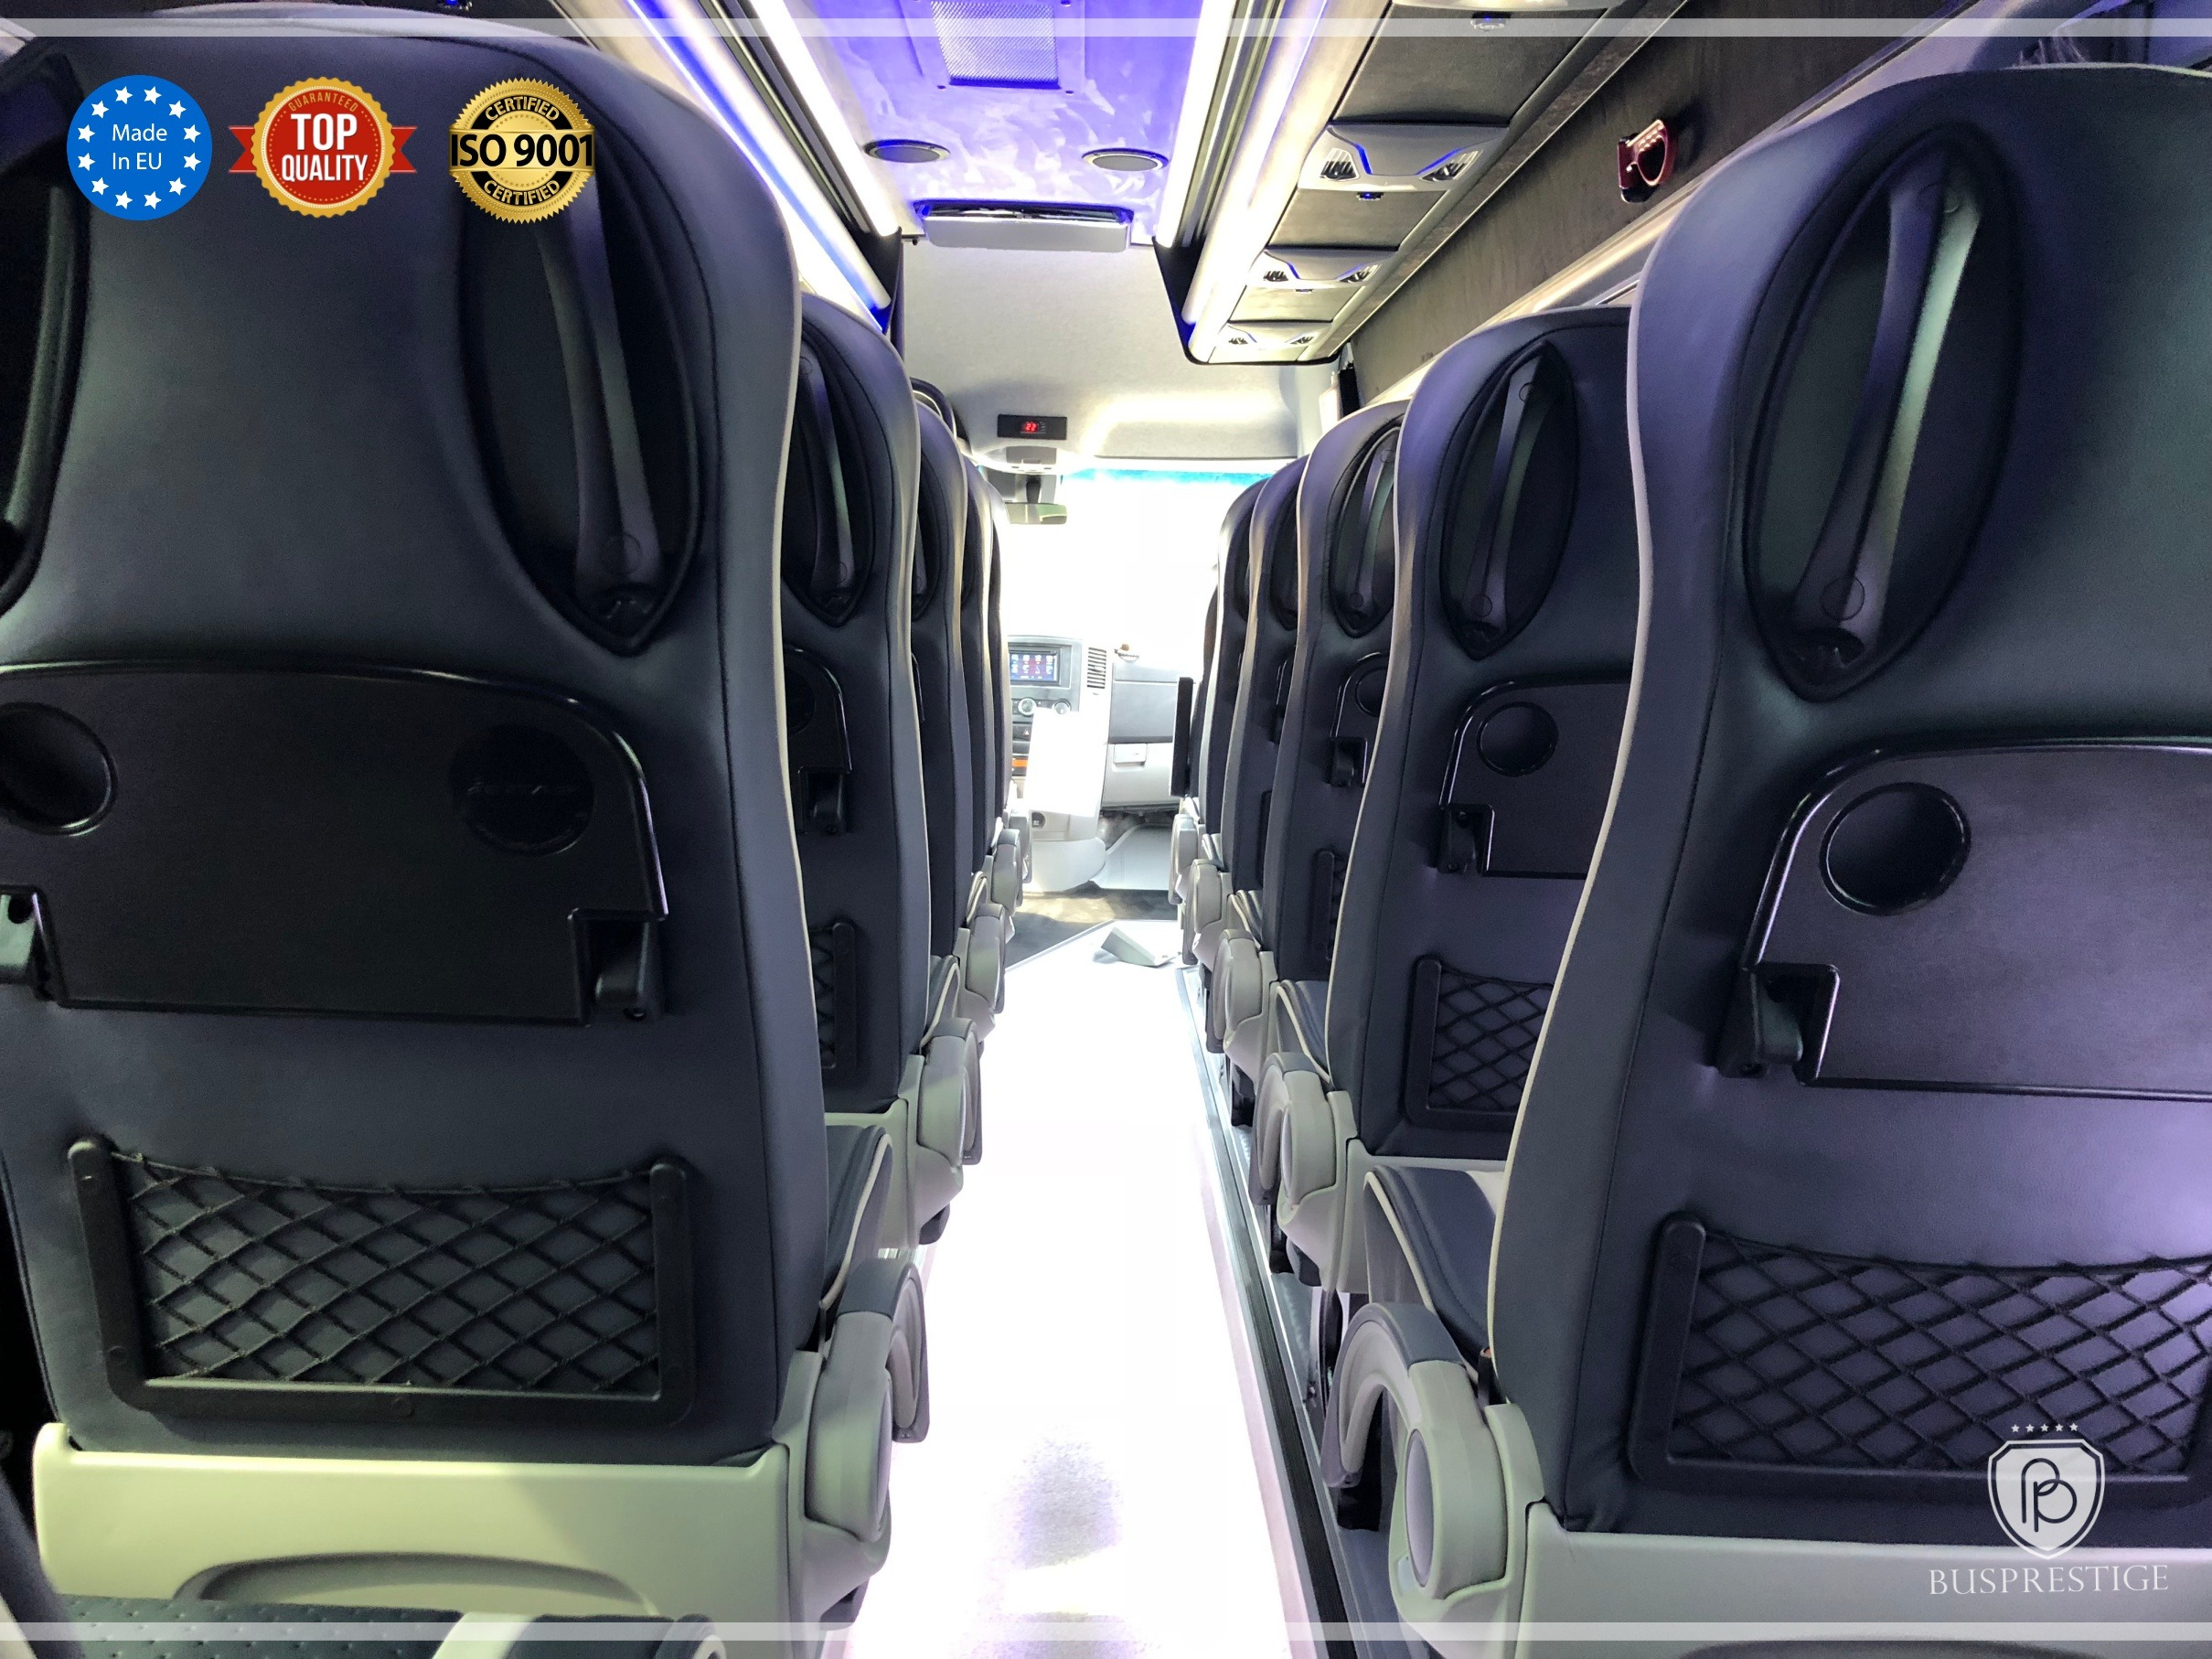 bus_prestige_sprinter_seats